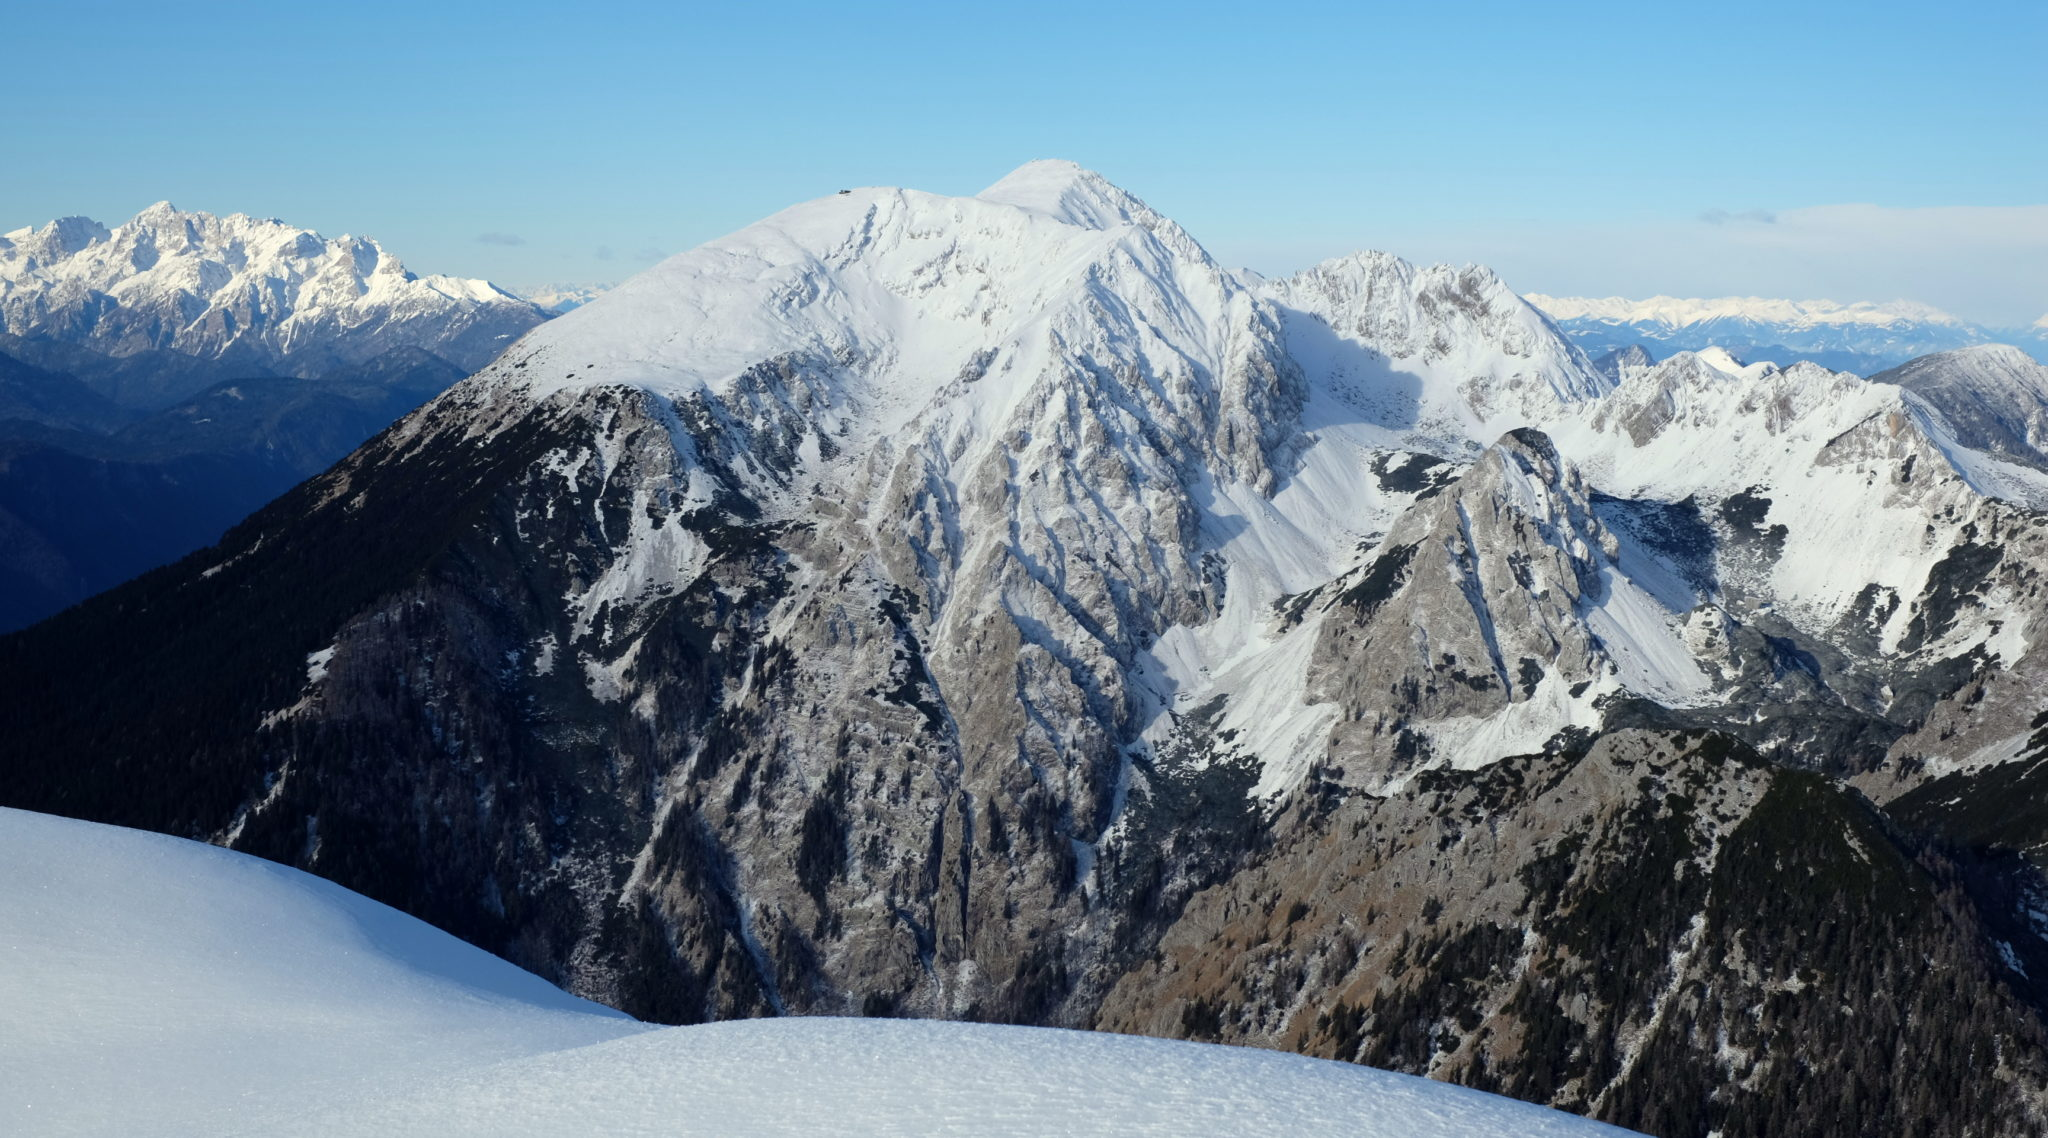 Stol (2,236 m / 7,336 ft), the highest mountain of the Karawanks, came into full view.